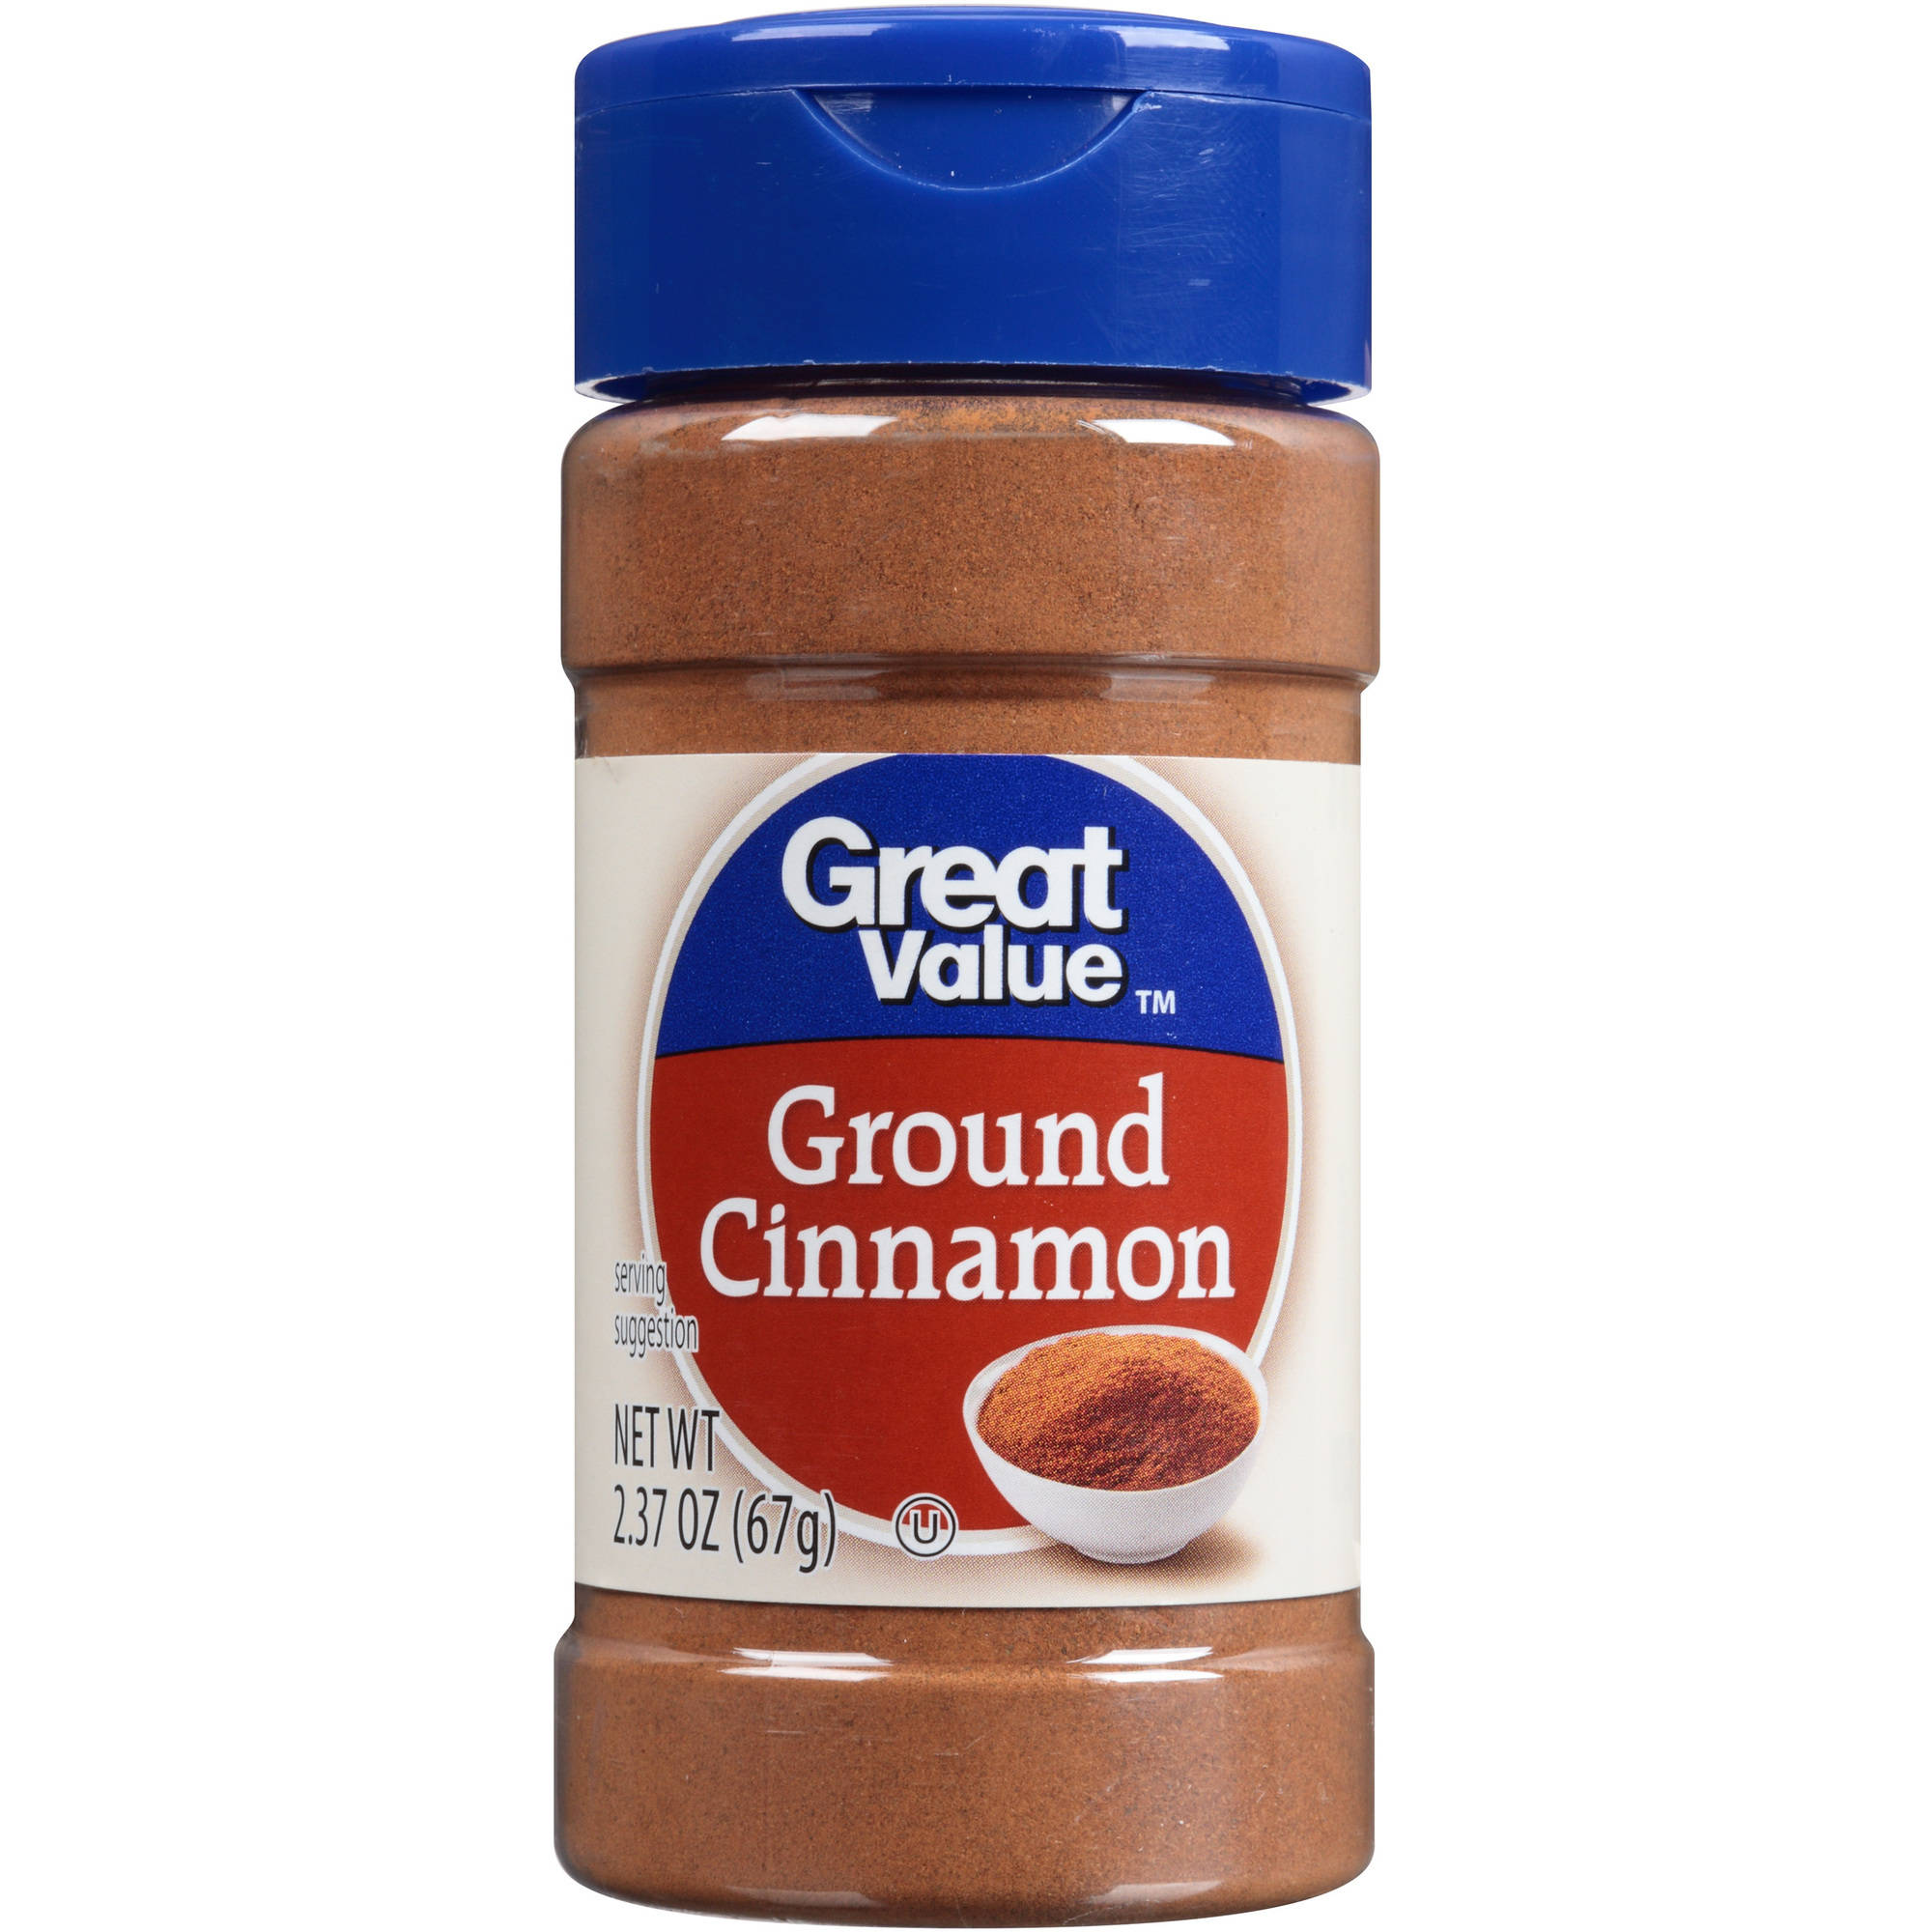 Great Value:  Ground Cinnamon, 2.37 Oz